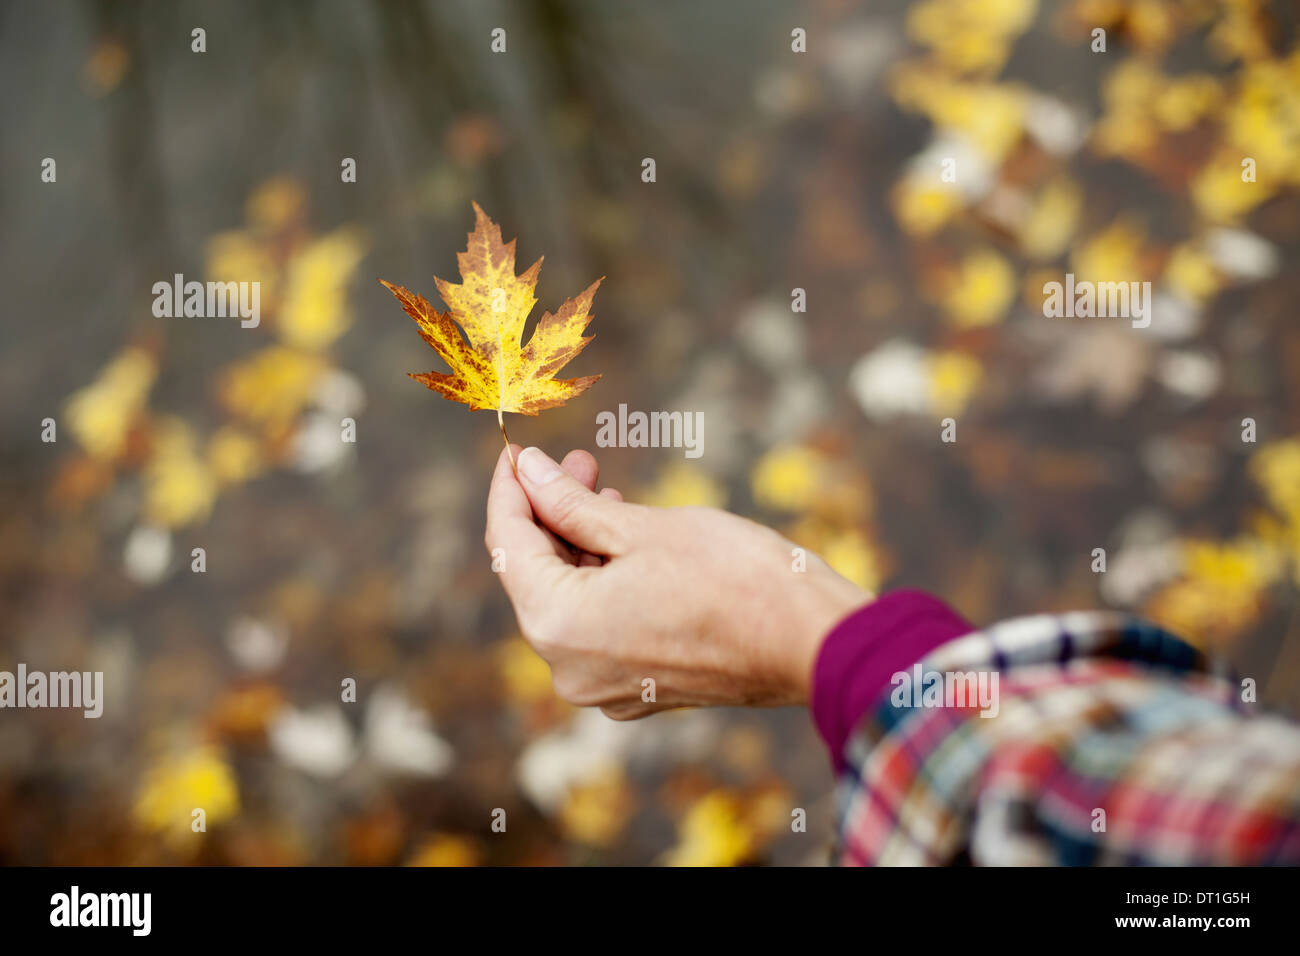 A woman holding out an autumn leaf A maple leaf turning brown - Stock Image